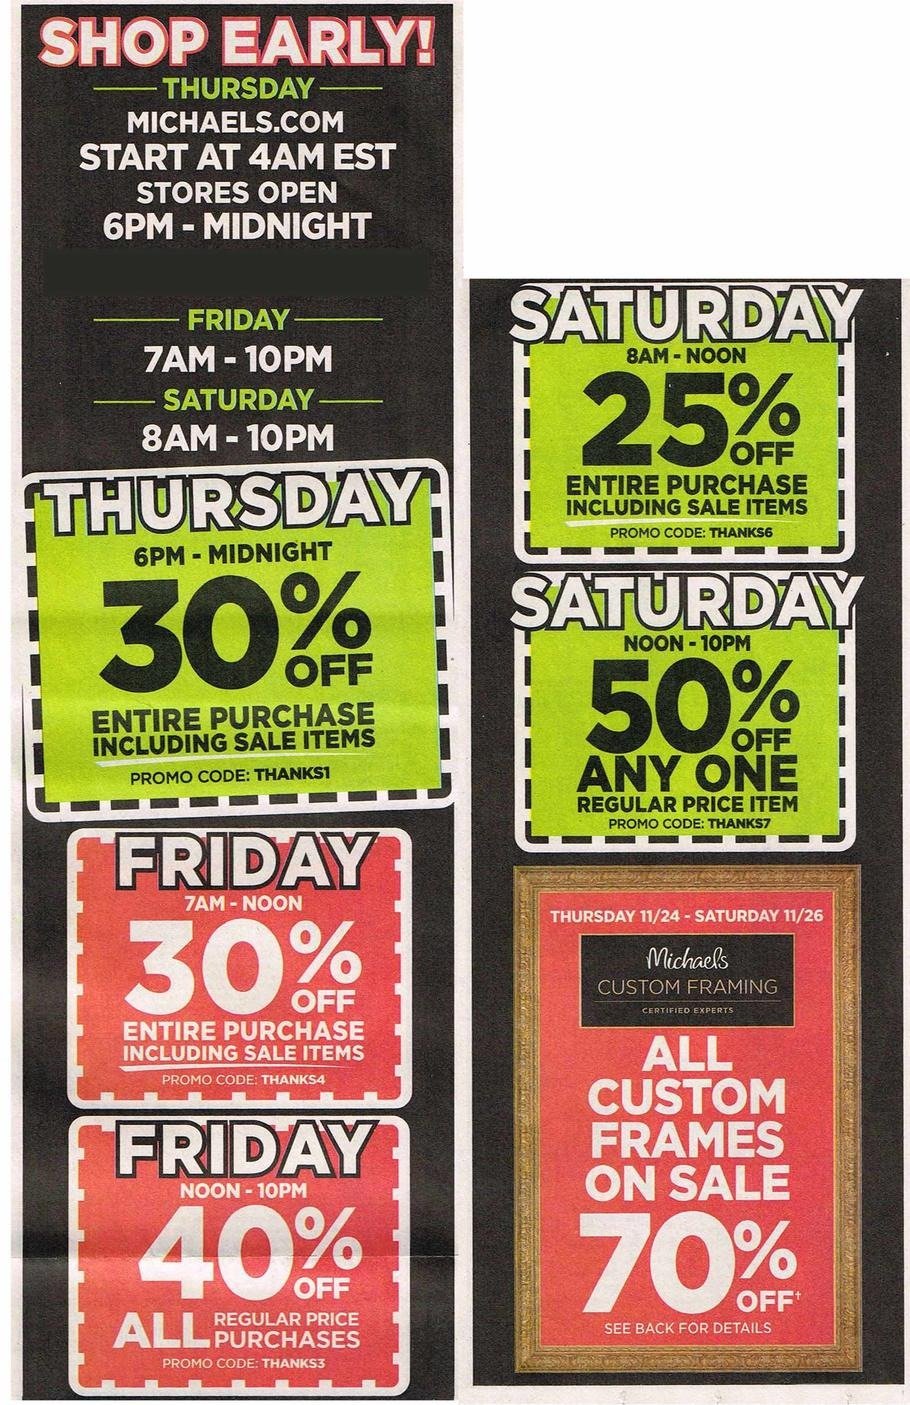 michaels-black-friday-2016-ad-scan-p00013